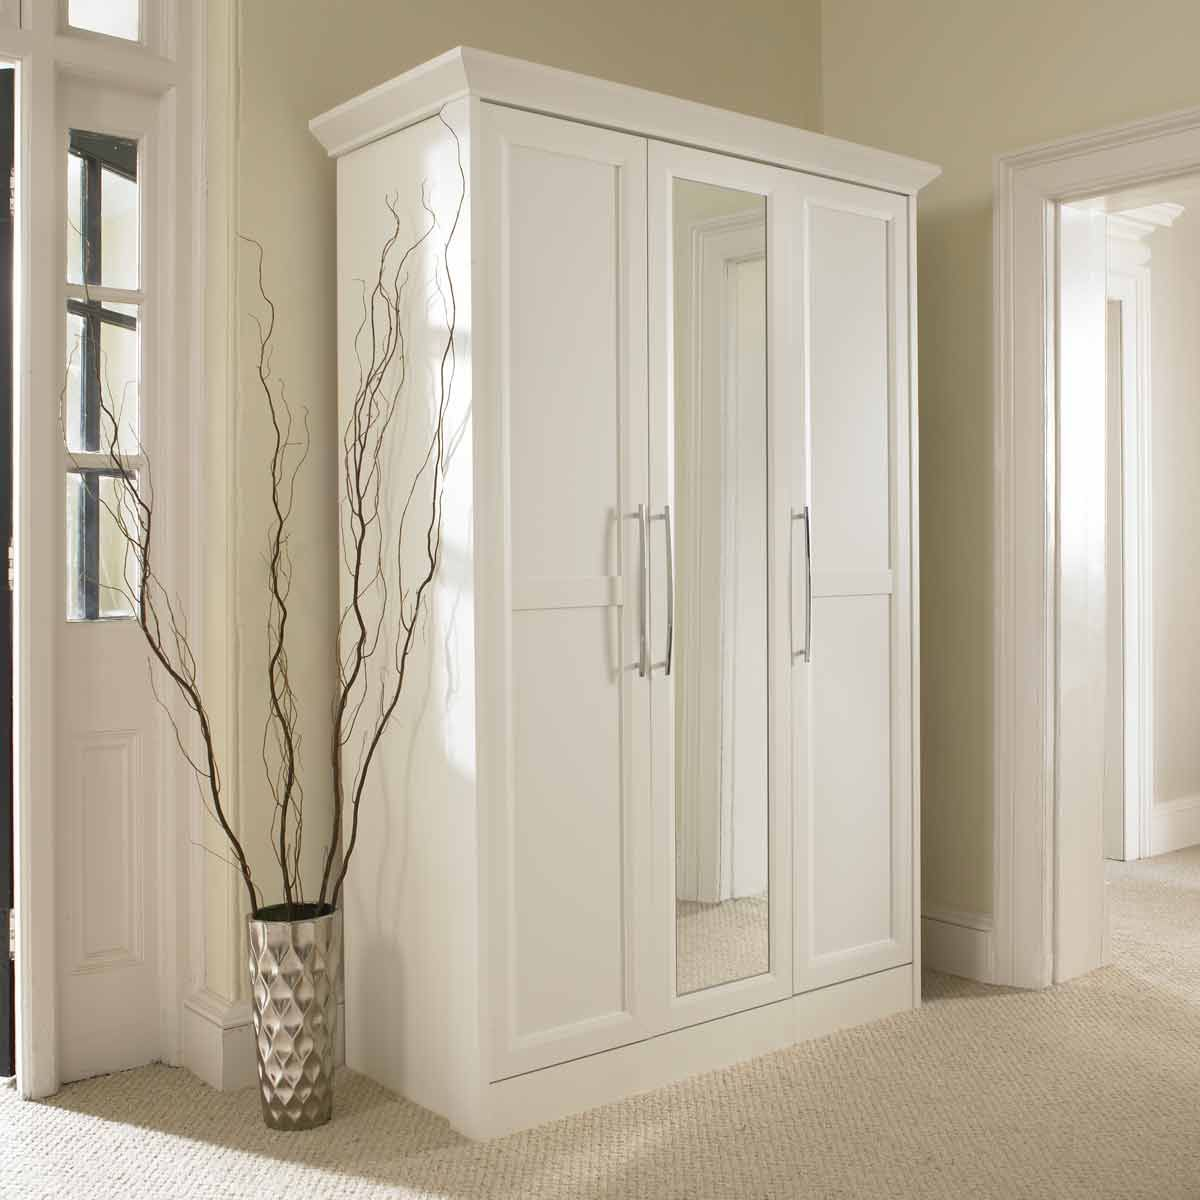 white armoire wardrobe bedroom furniture. Image Of: Door Mirrored Armoire White Wardrobe Bedroom Furniture S